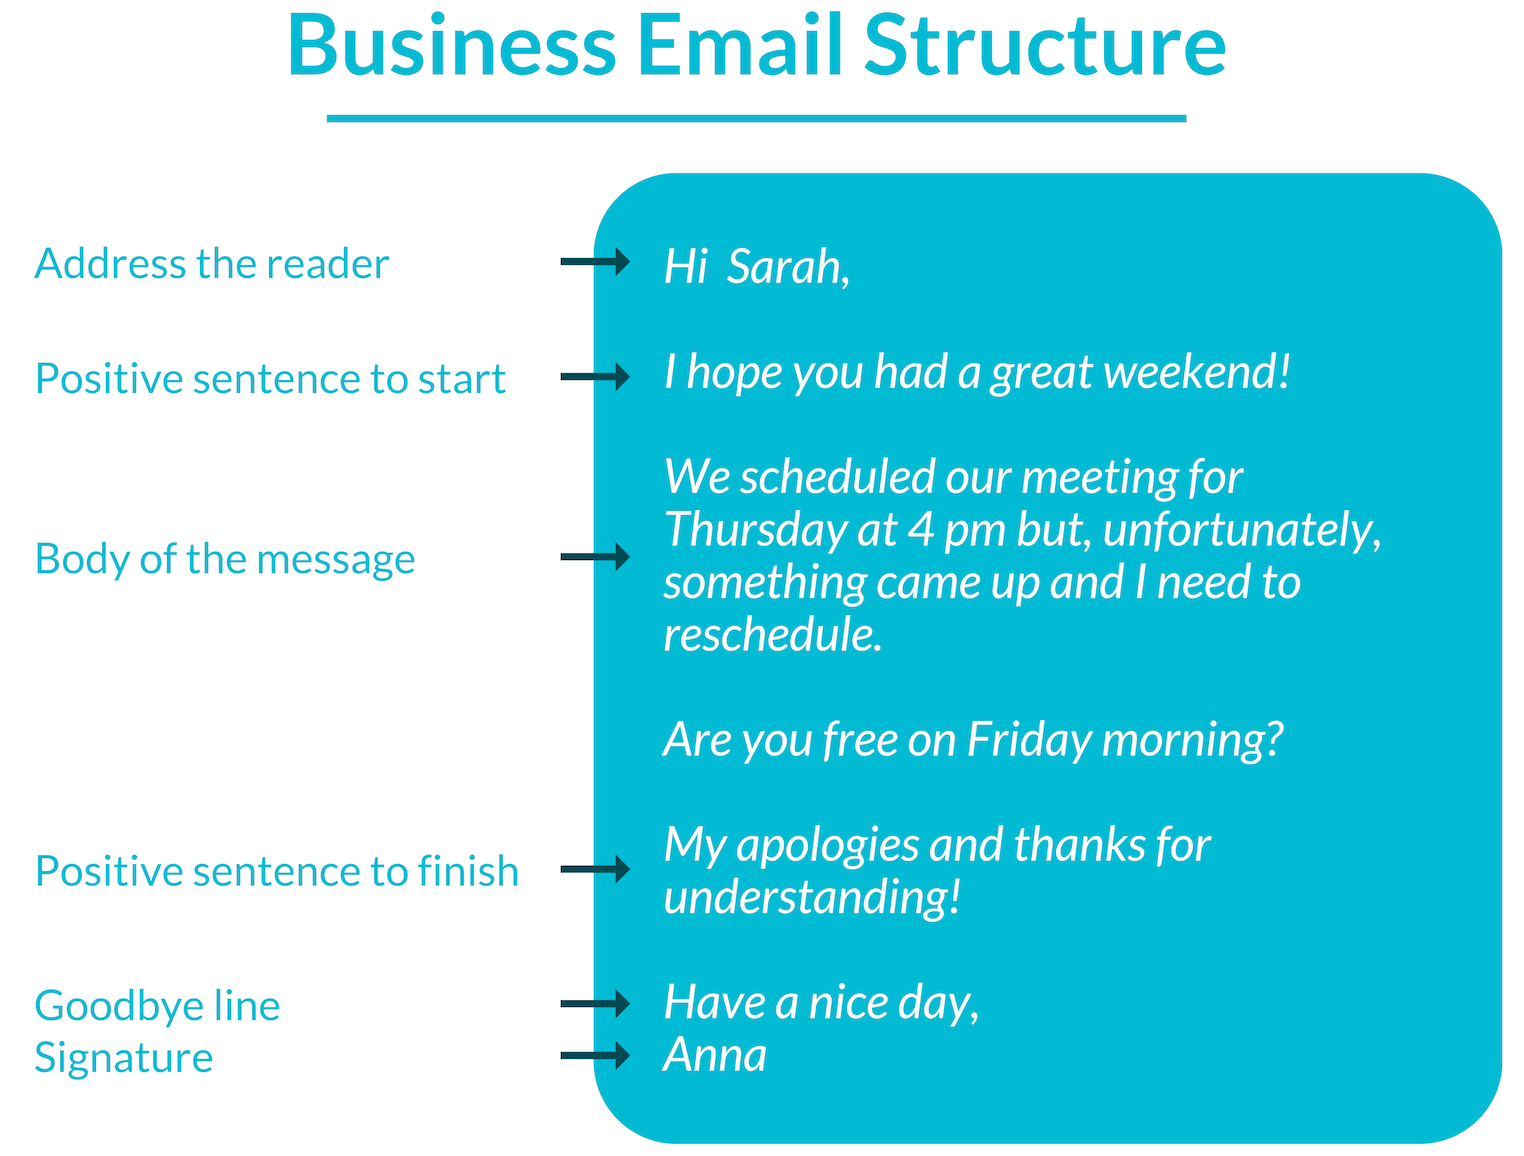 Business Email Structure (1)